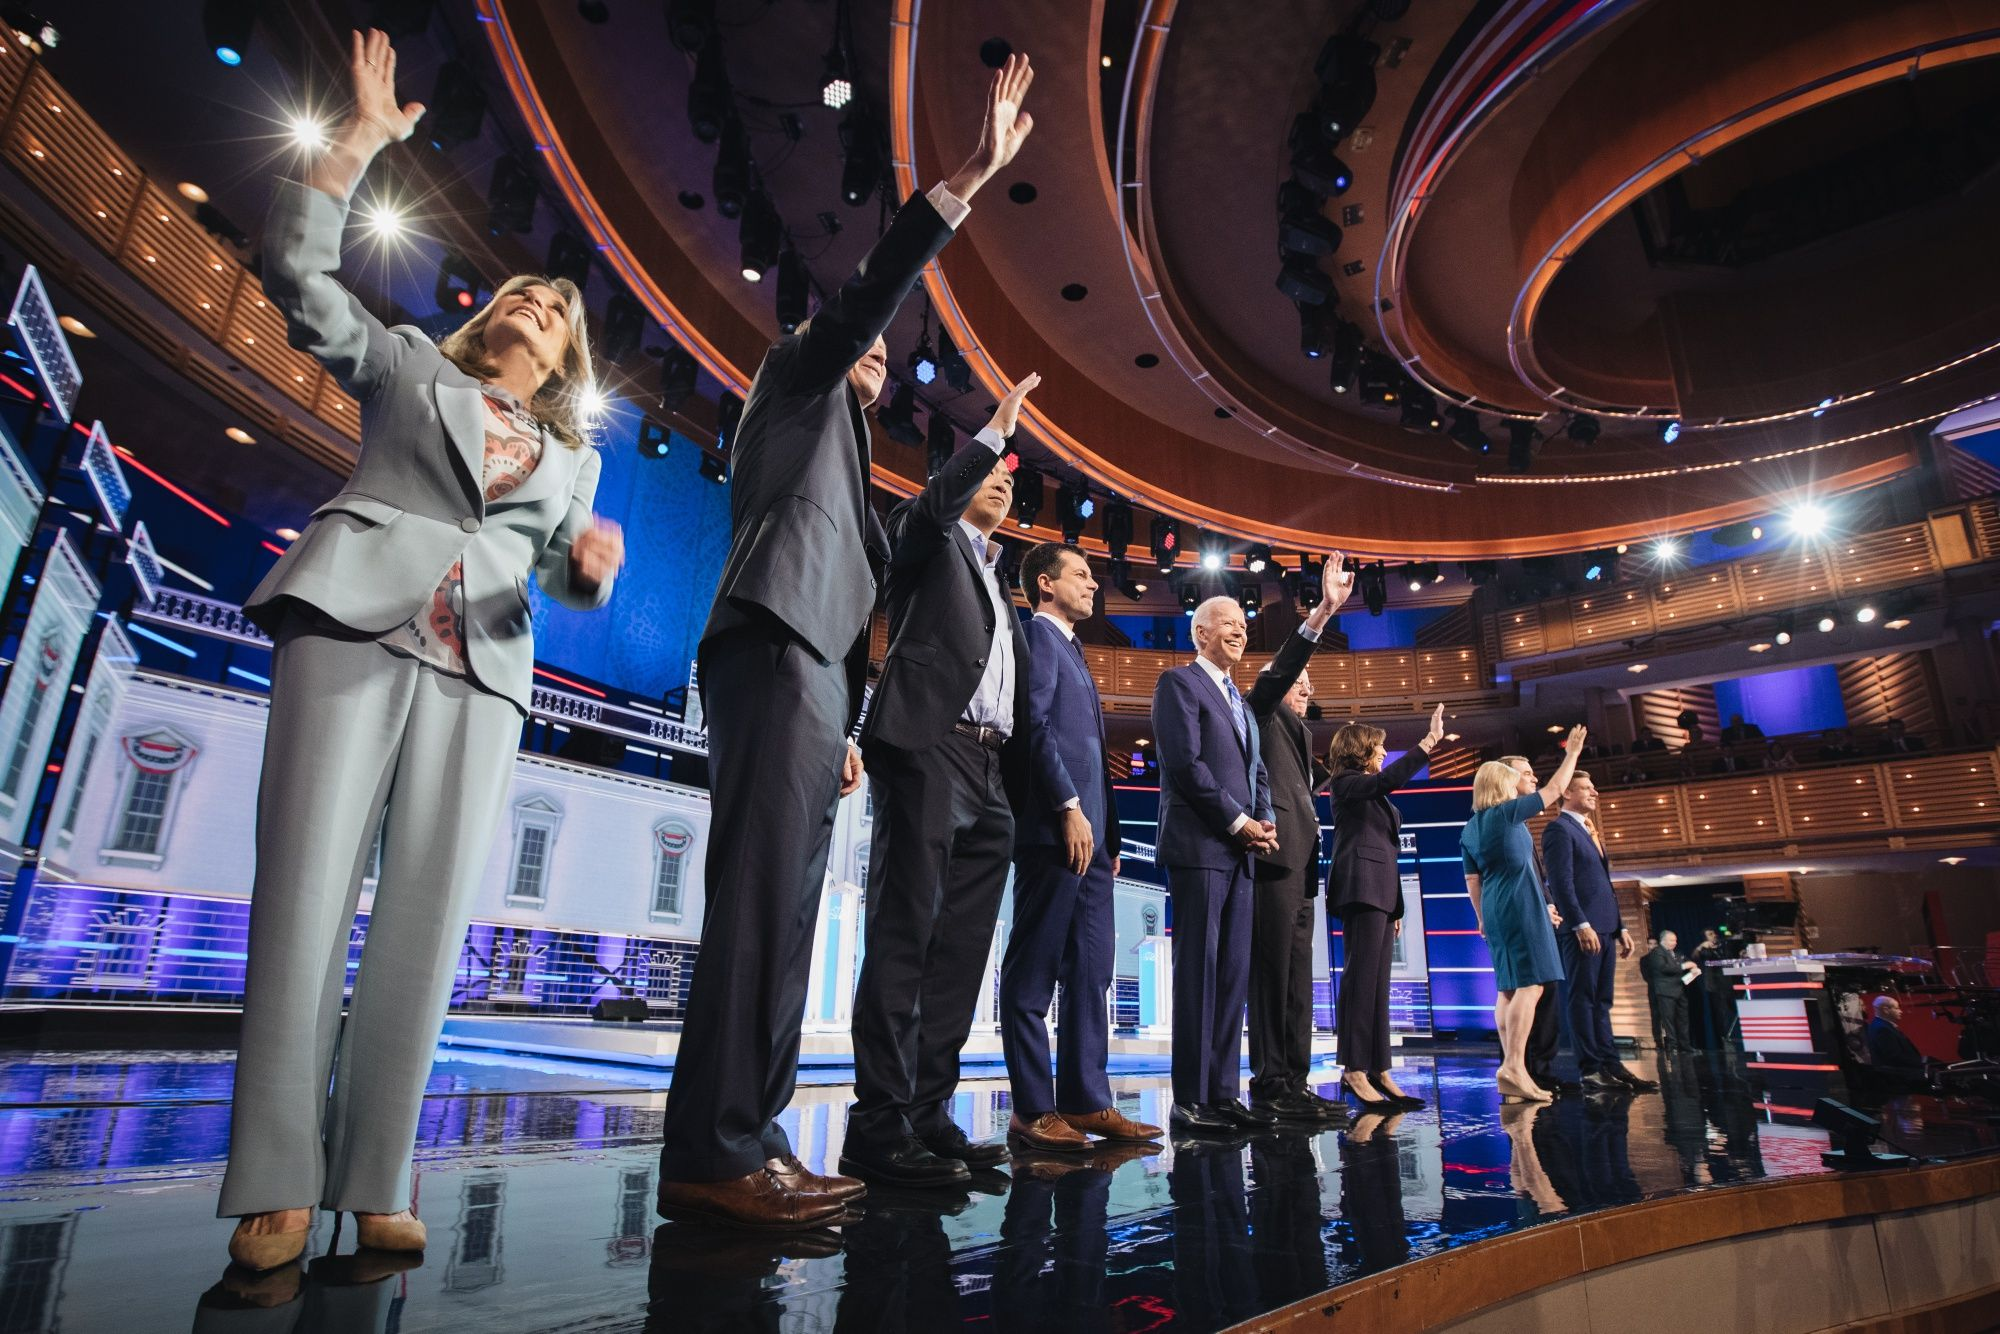 Debate Takeaways: Harris Soars, Biden Stumbles, Buttigieg Scores